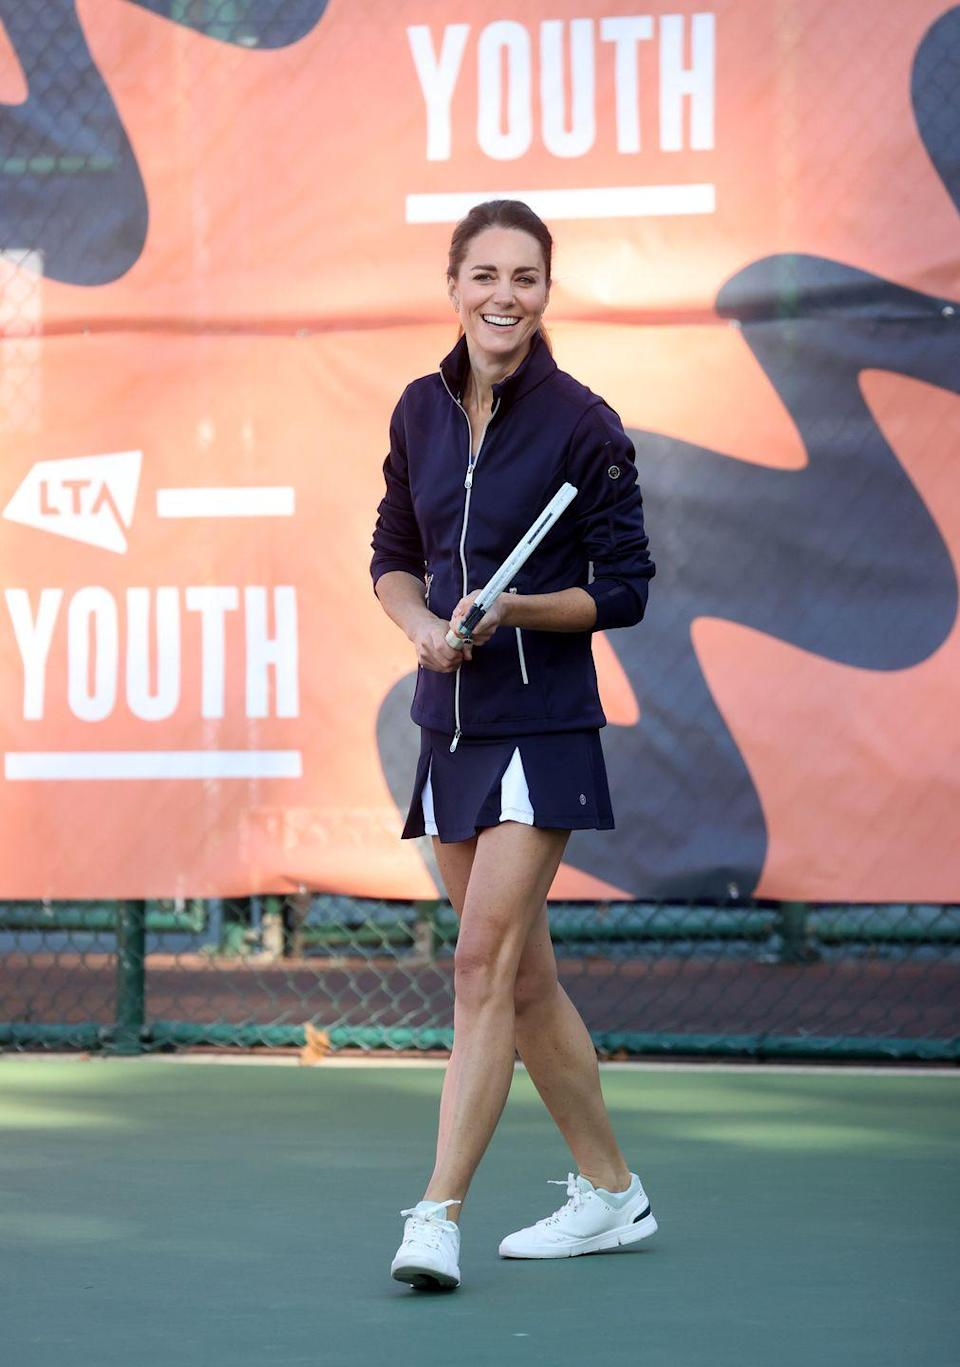 """<p>In case there was any doubt about the stylishness of the <a href=""""https://www.townandcountrymag.com/style/g37374577/best-tennis-outfits/"""" rel=""""nofollow noopener"""" target=""""_blank"""" data-ylk=""""slk:tennis fashion trend"""" class=""""link rapid-noclick-resp"""">tennis fashion trend</a>, Kate donned a perfectly put-together navy blue tennis skirt with contrasting white panels, a navy and white jacket, and <a href=""""https://www.townandcountrymag.com/style/g28073171/best-white-sneakers-for-women/"""" rel=""""nofollow noopener"""" target=""""_blank"""" data-ylk=""""slk:white sneakers"""" class=""""link rapid-noclick-resp"""">white sneakers</a> for a <a href=""""https://www.townandcountrymag.com/society/tradition/a37721234/kate-middleton-plays-tennis-with-us-open-champion-emma-raducanu-photos/"""" rel=""""nofollow noopener"""" target=""""_blank"""" data-ylk=""""slk:doubles match with US Open Champion Emma Raducanu"""" class=""""link rapid-noclick-resp"""">doubles match with US Open Champion Emma Raducanu</a>. </p>"""